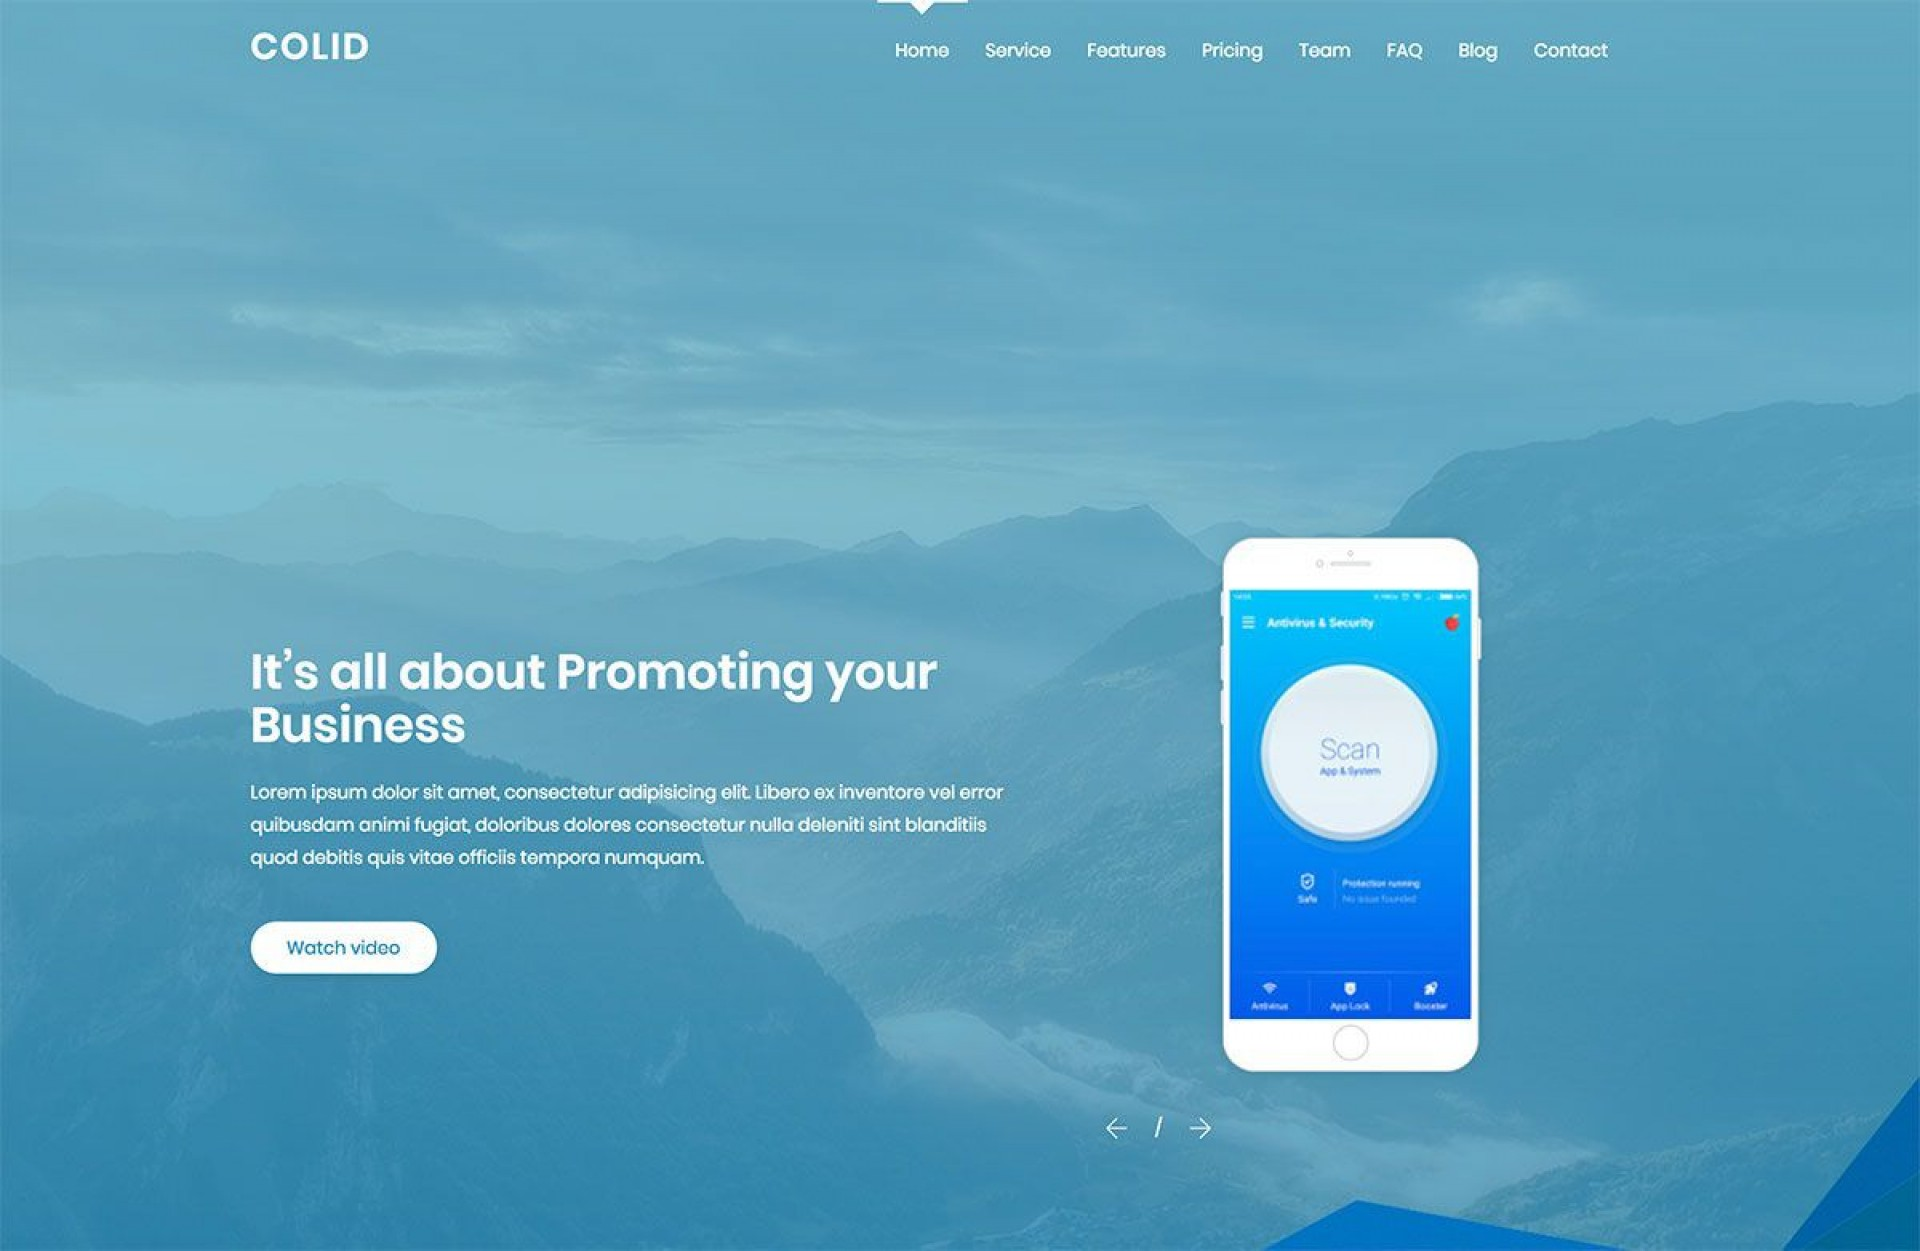 006 Stirring Single Page Web Template Highest Quality  Templates One Website Free Download Html5 Bootstrap1920